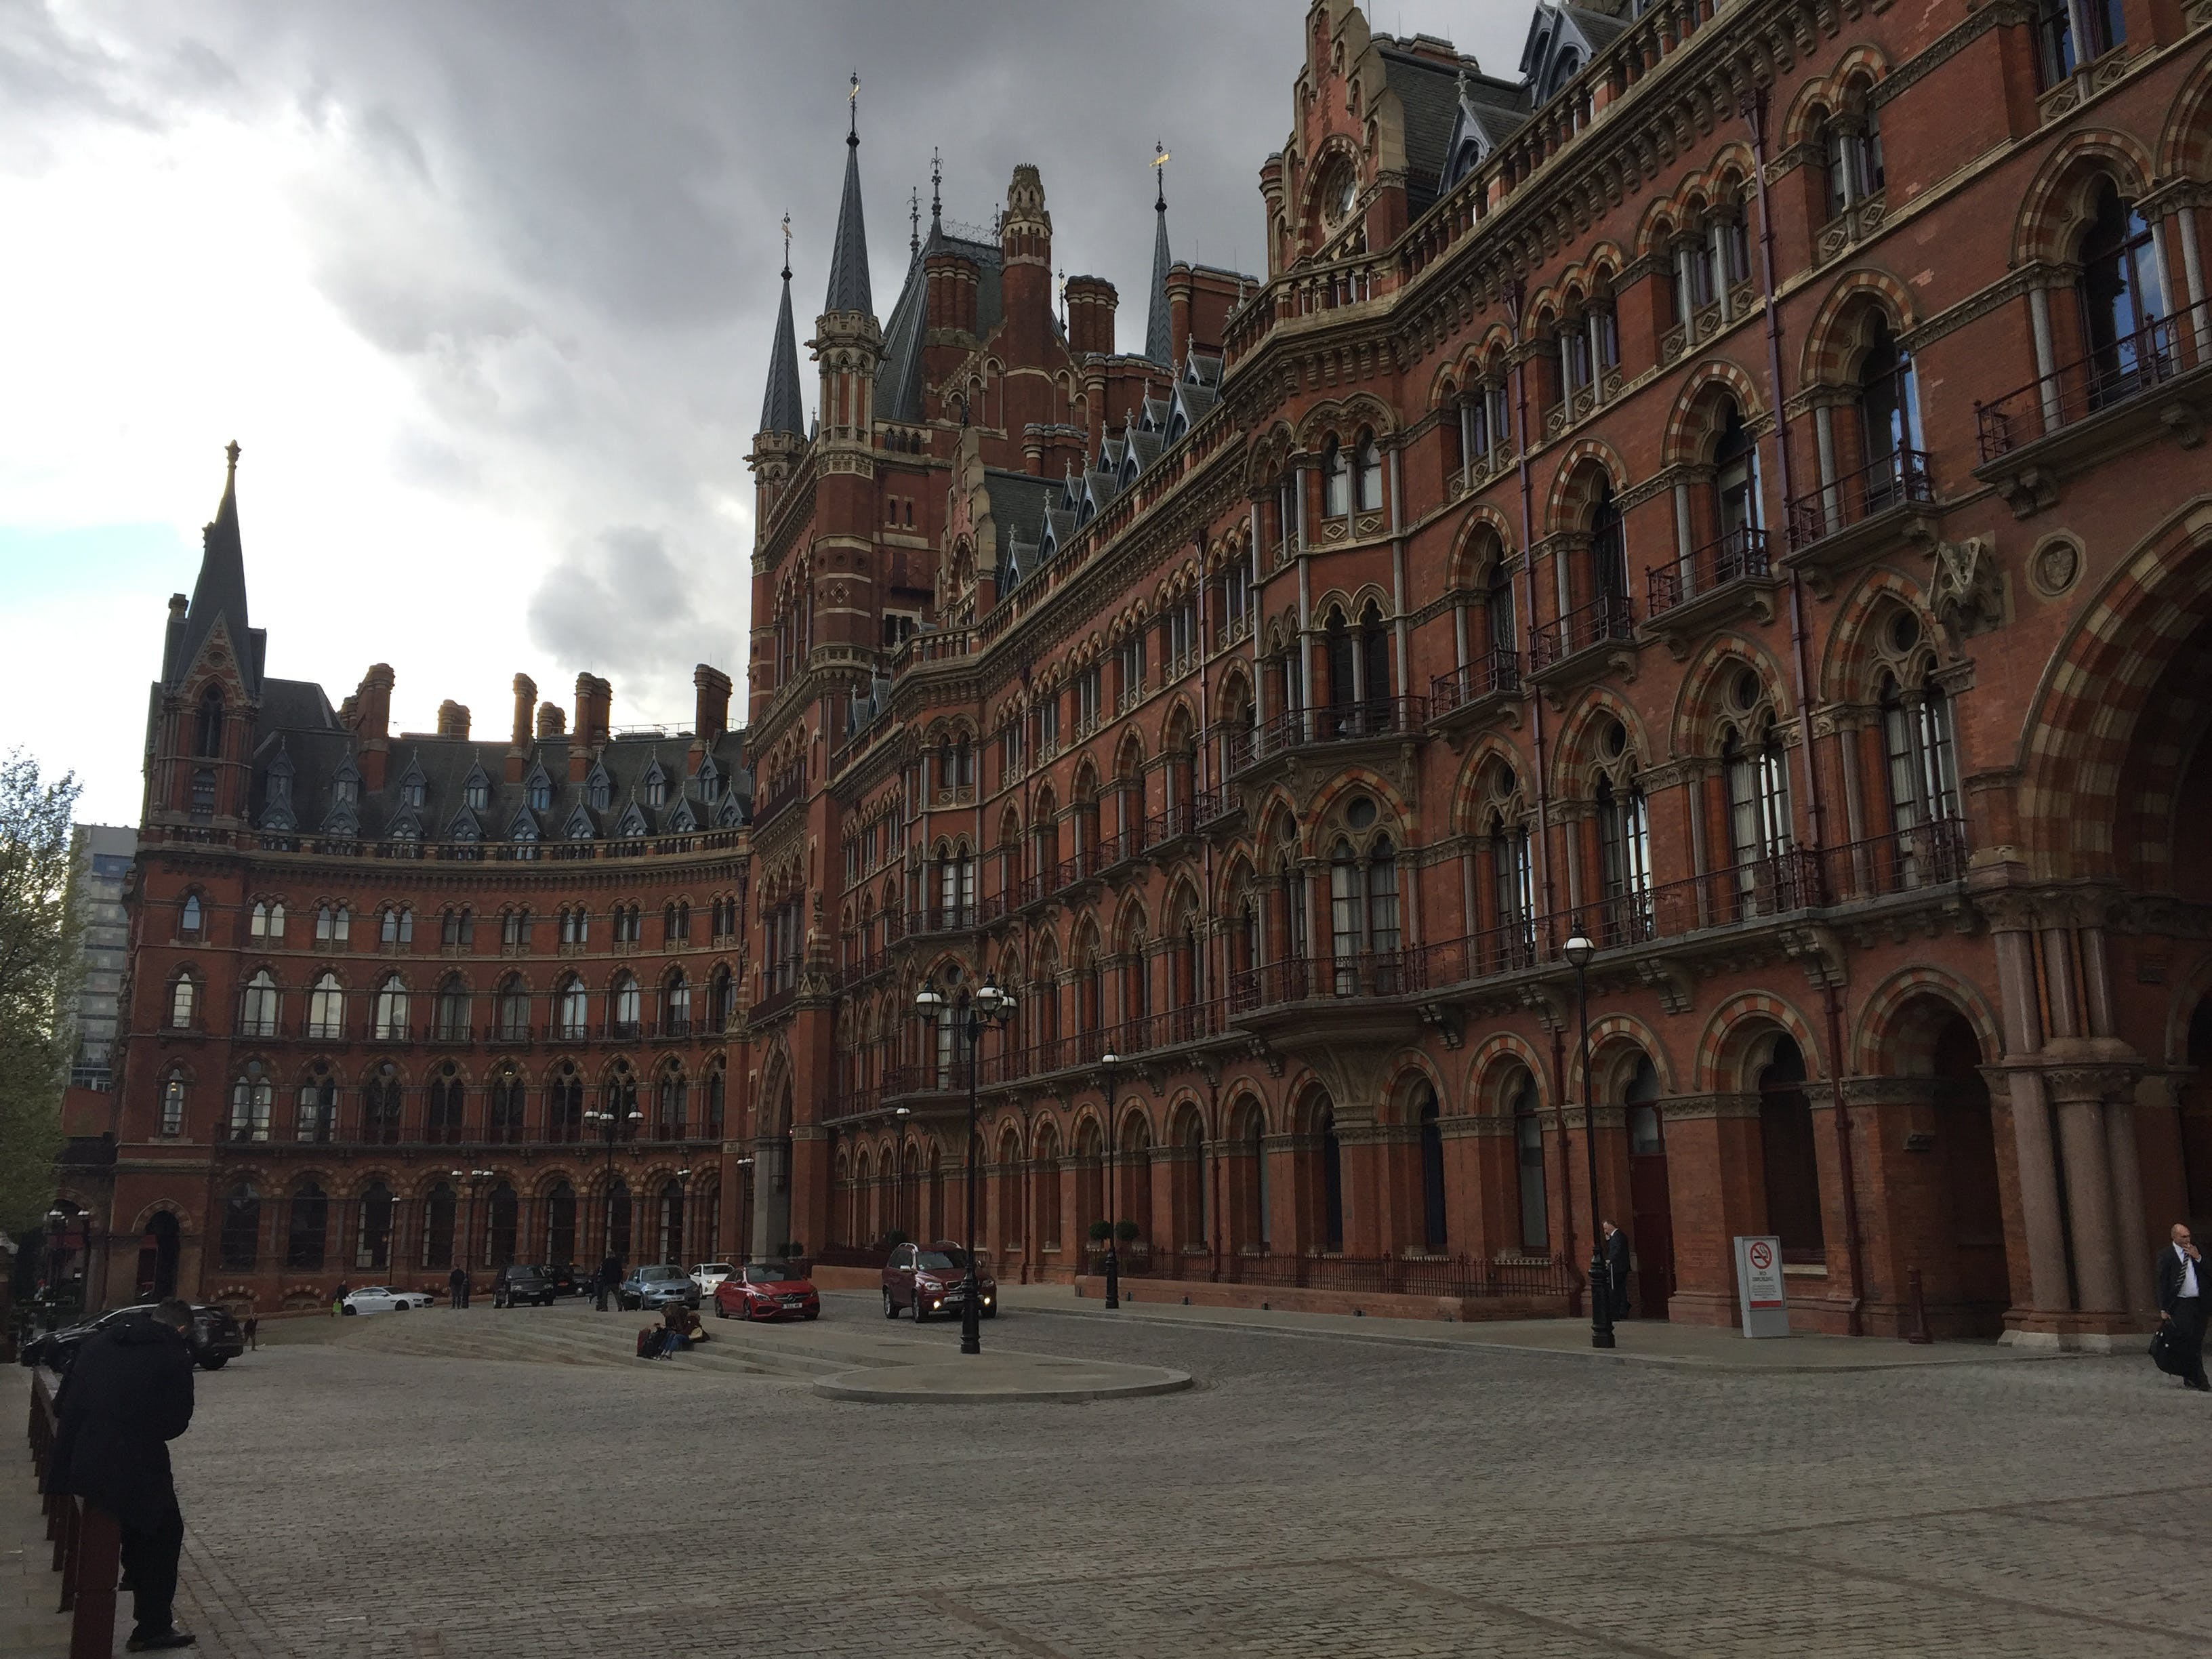 Free stock photo of gothic style, St Pancras Station, Station Hotel, George Gilbert Scott